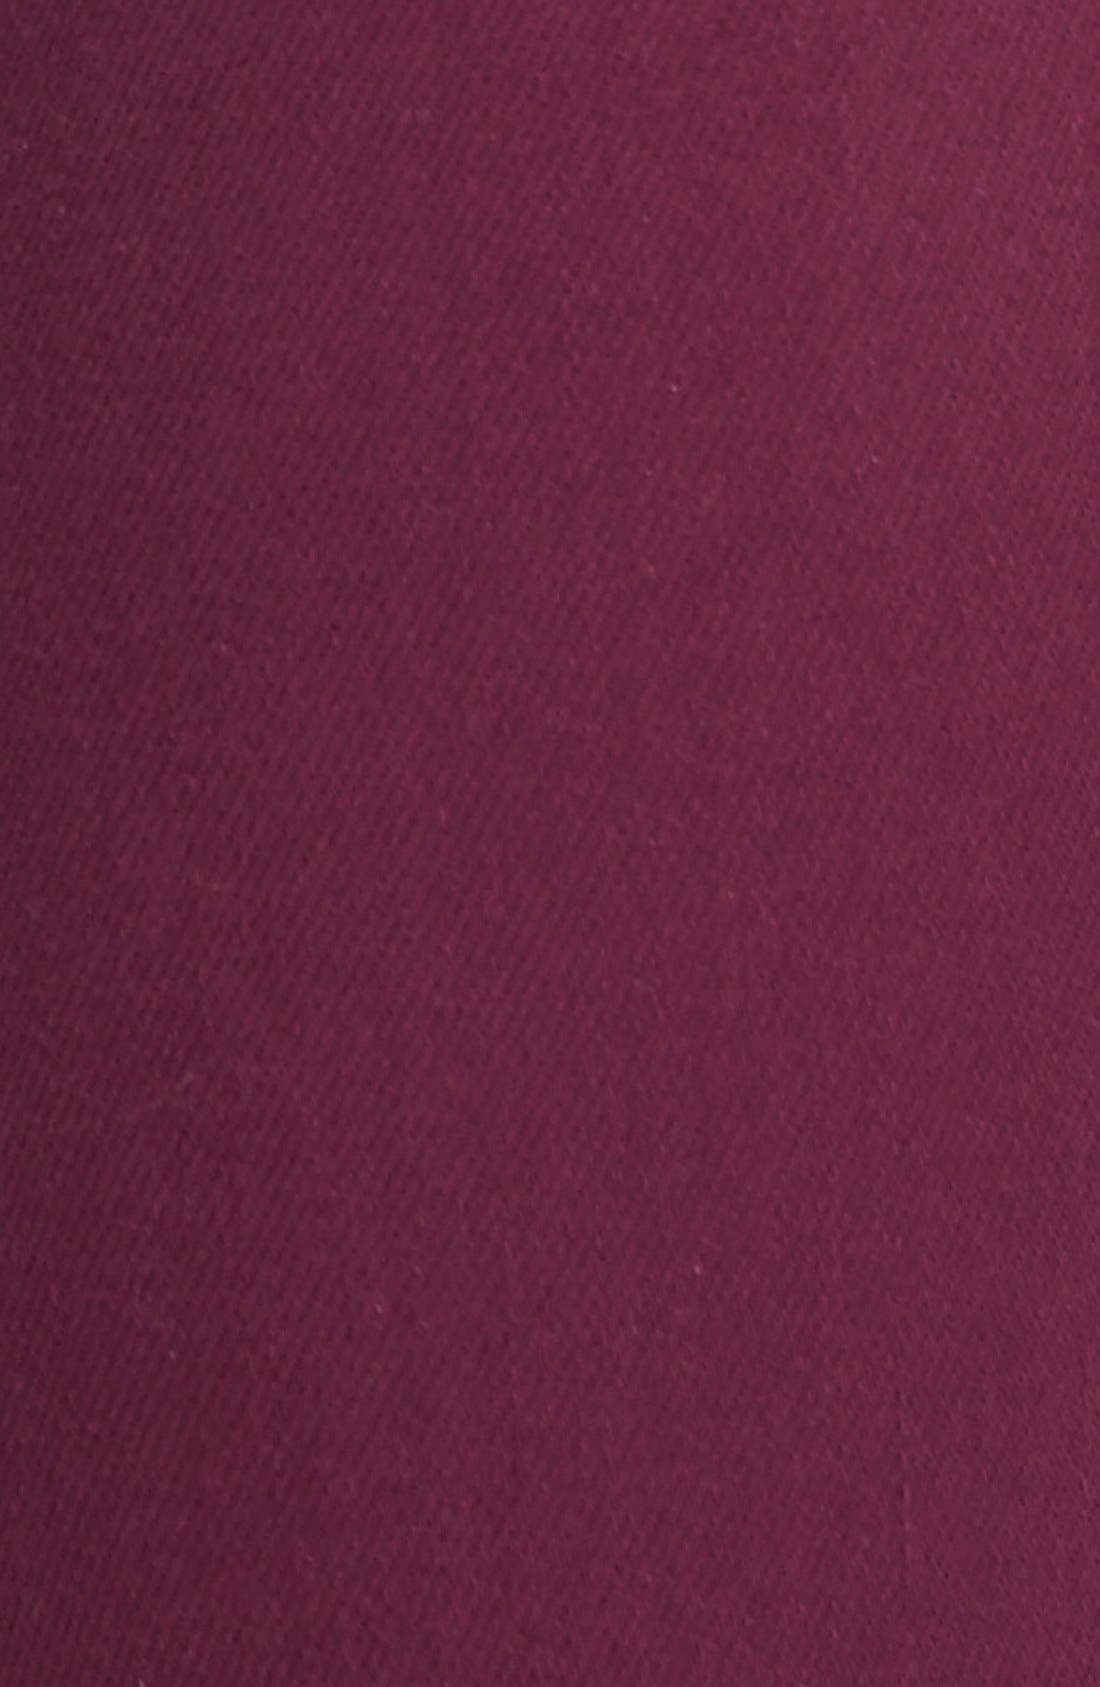 Alternate Image 3  - Paige Denim 'Hoxton' Ultra Skinny Jeans (Passion Plum)